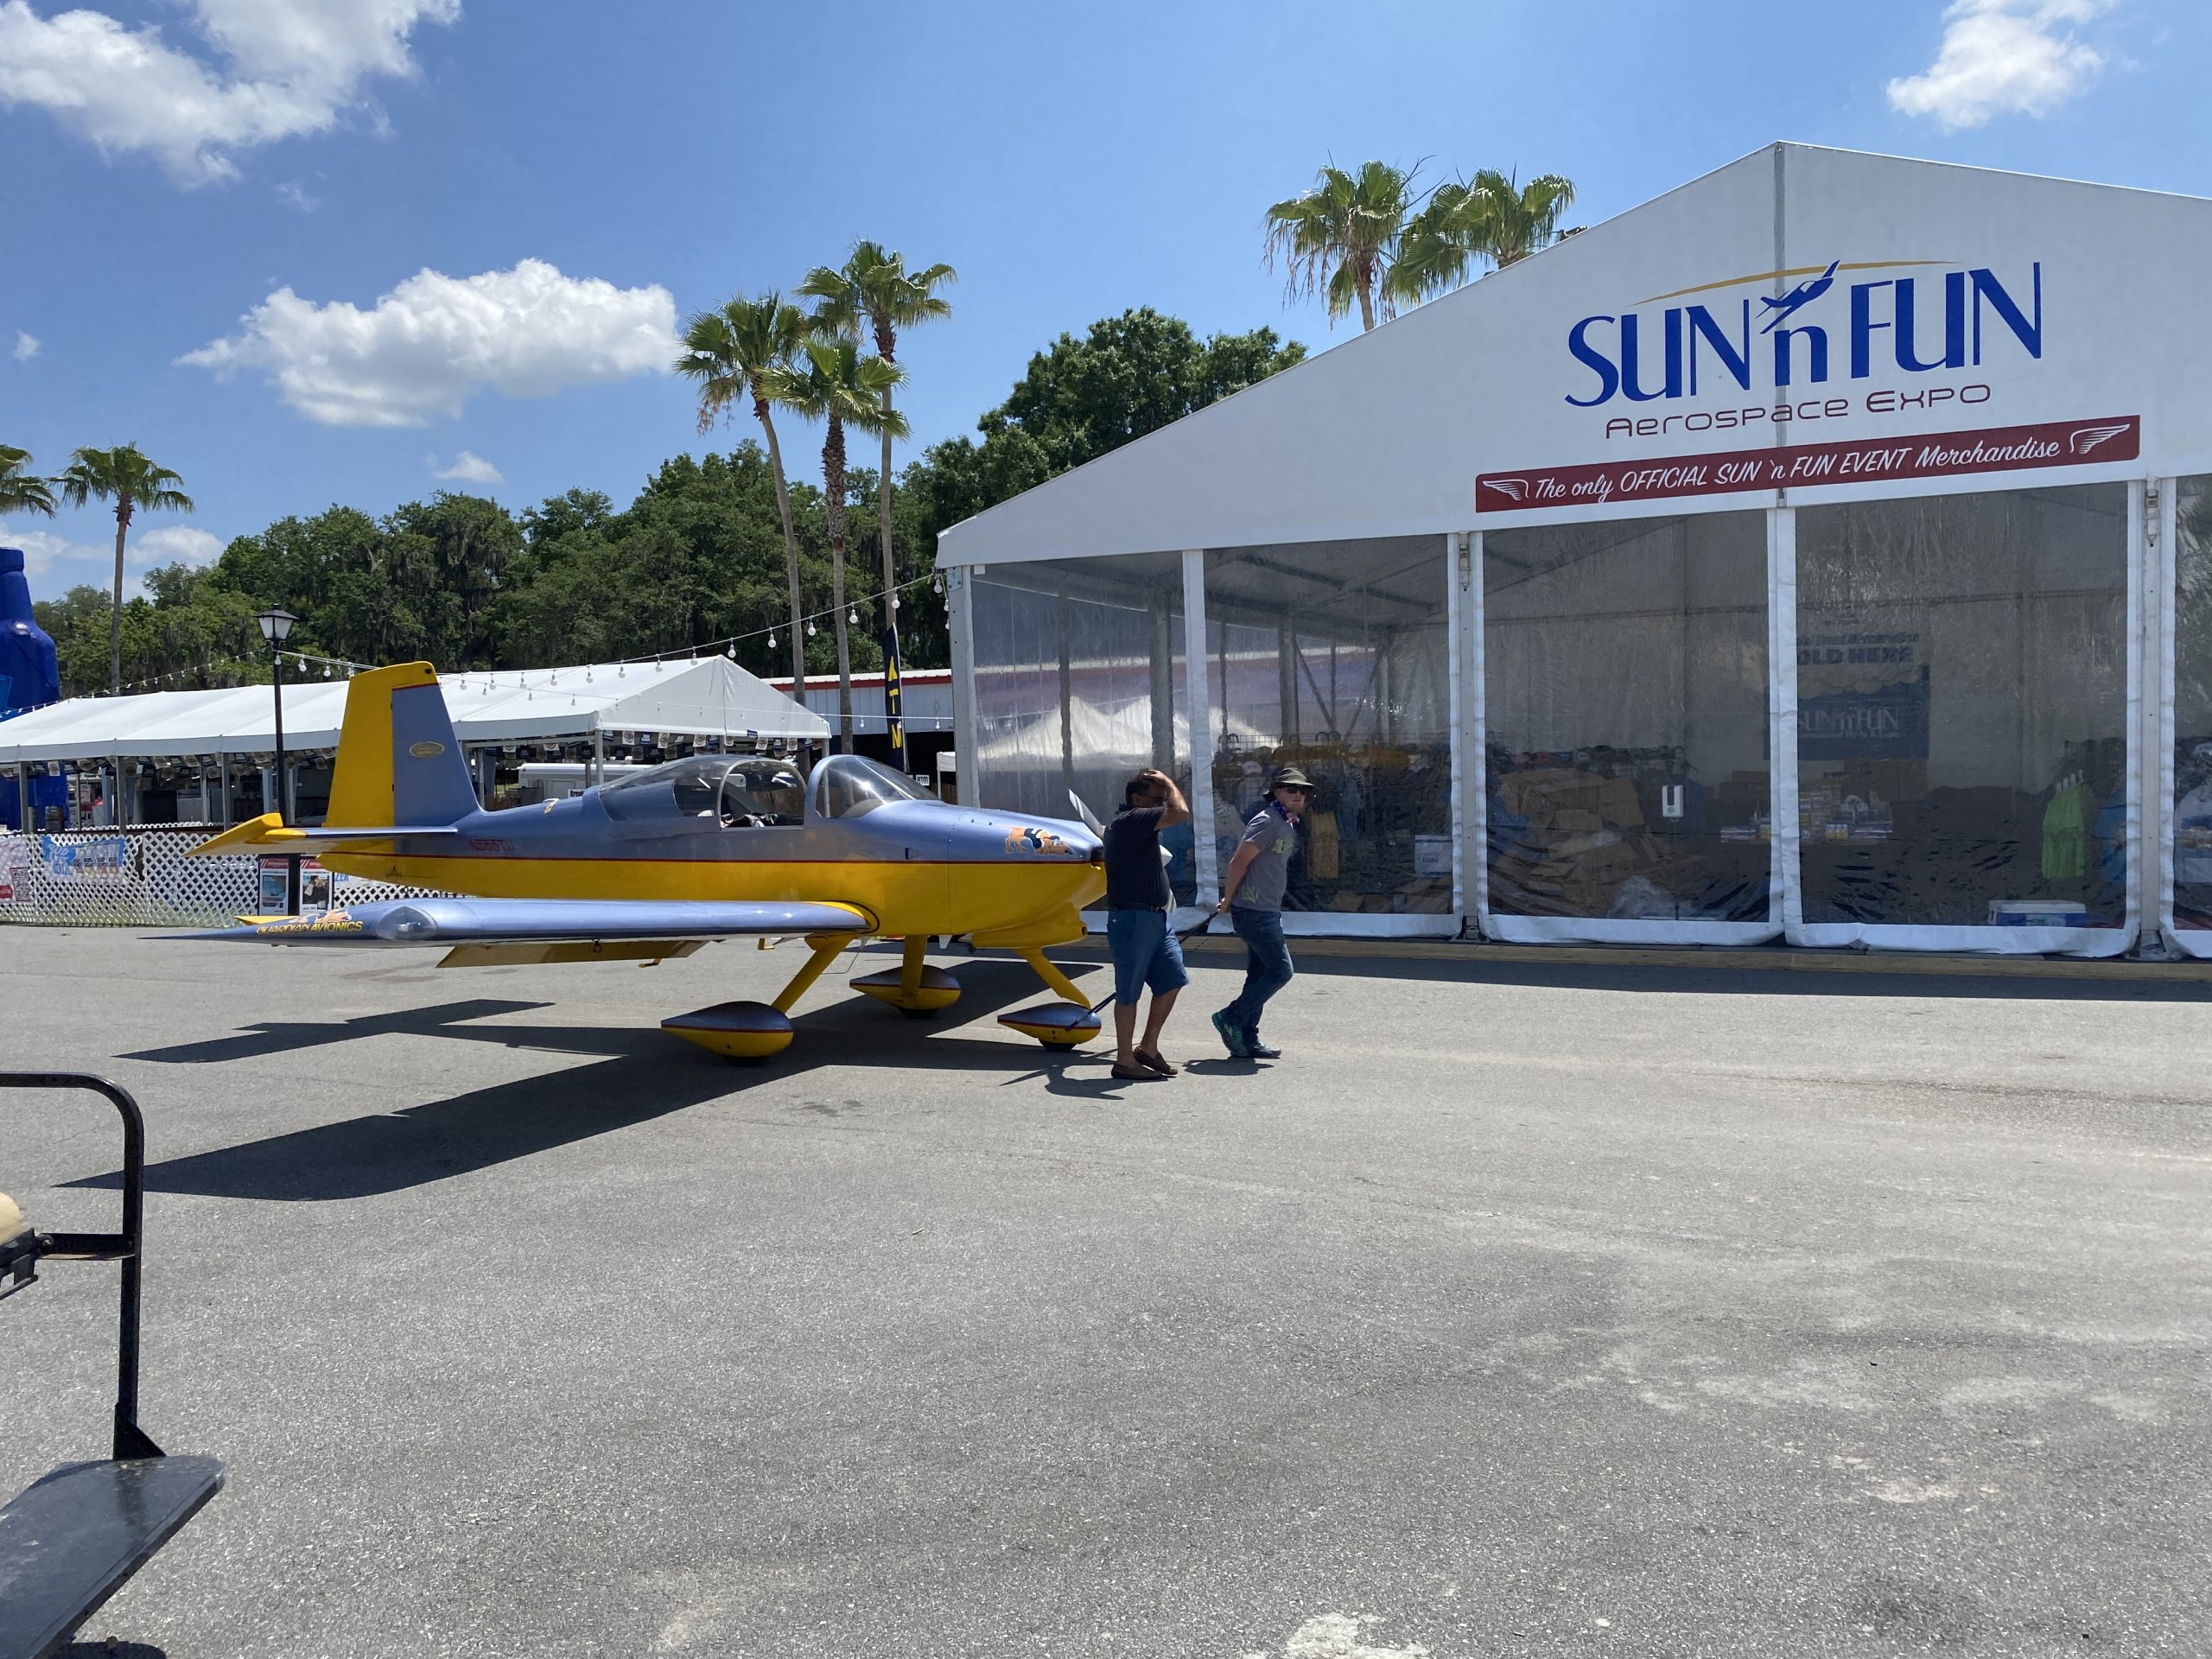 Sun 'n Fun Aerospace Expo 2021 is underway after a year-long hiatus.